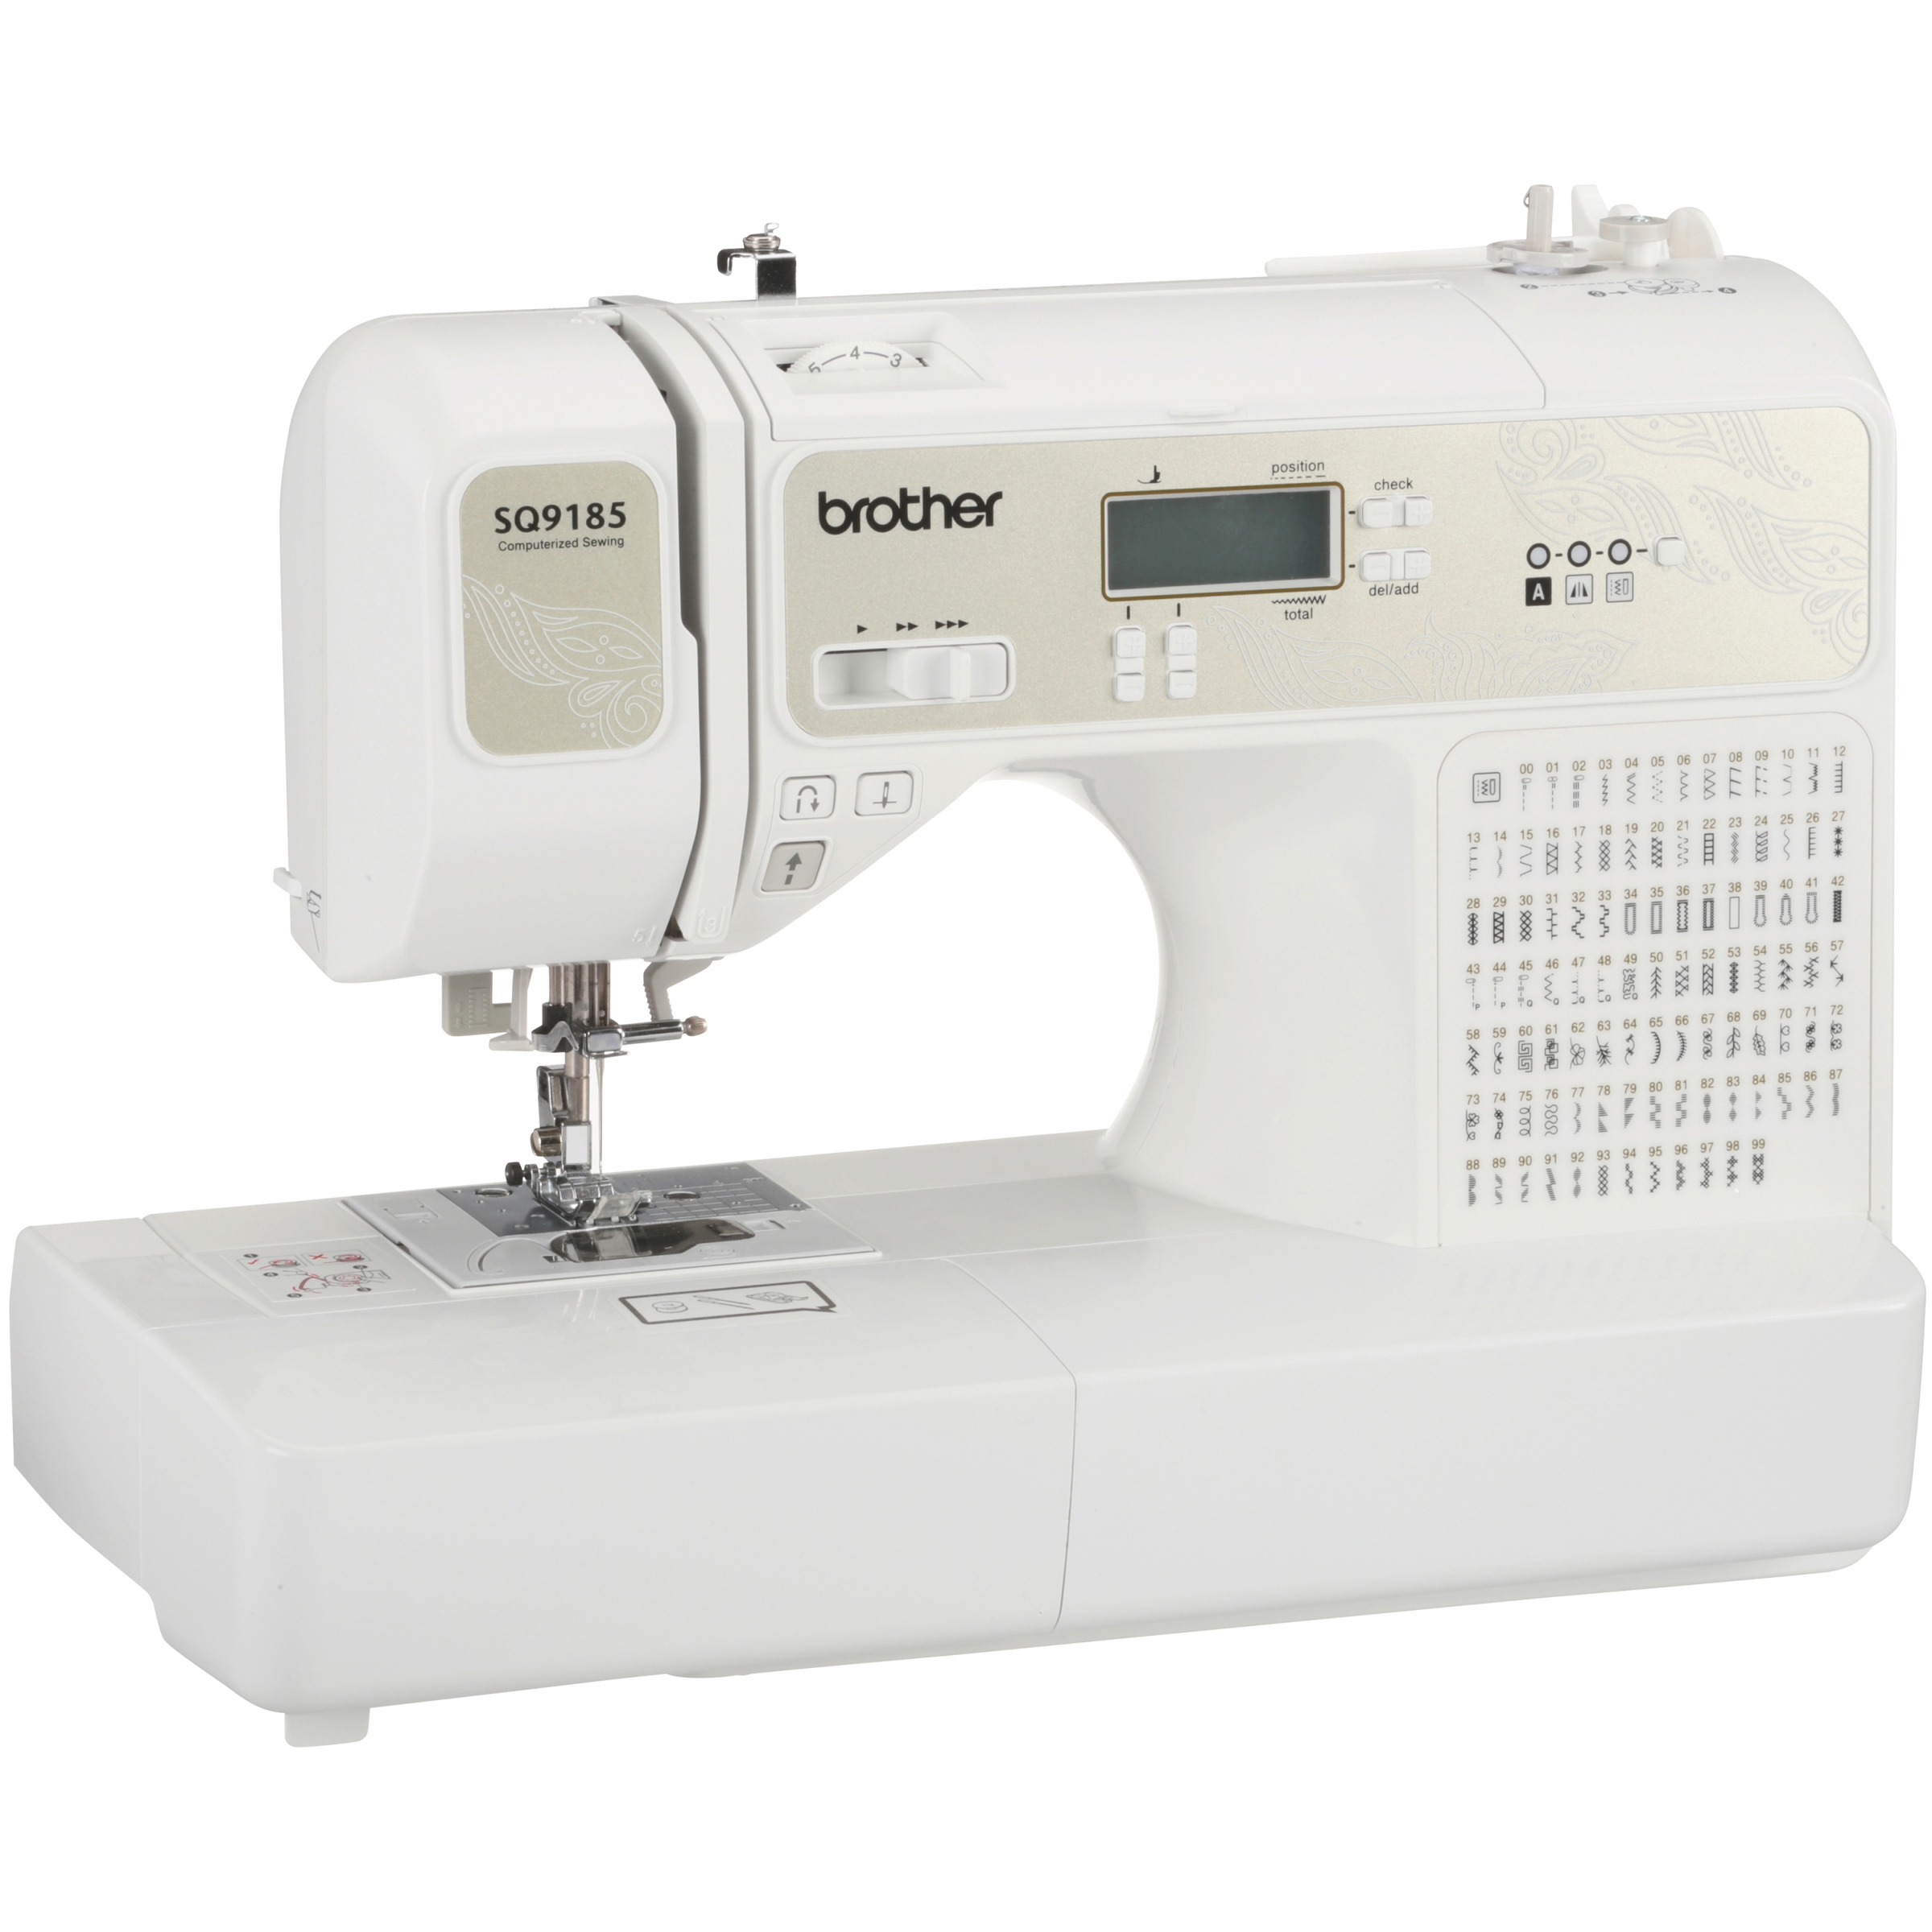 Brother Factory Remanufactured Computerized Sewing & Quilting Machine Box